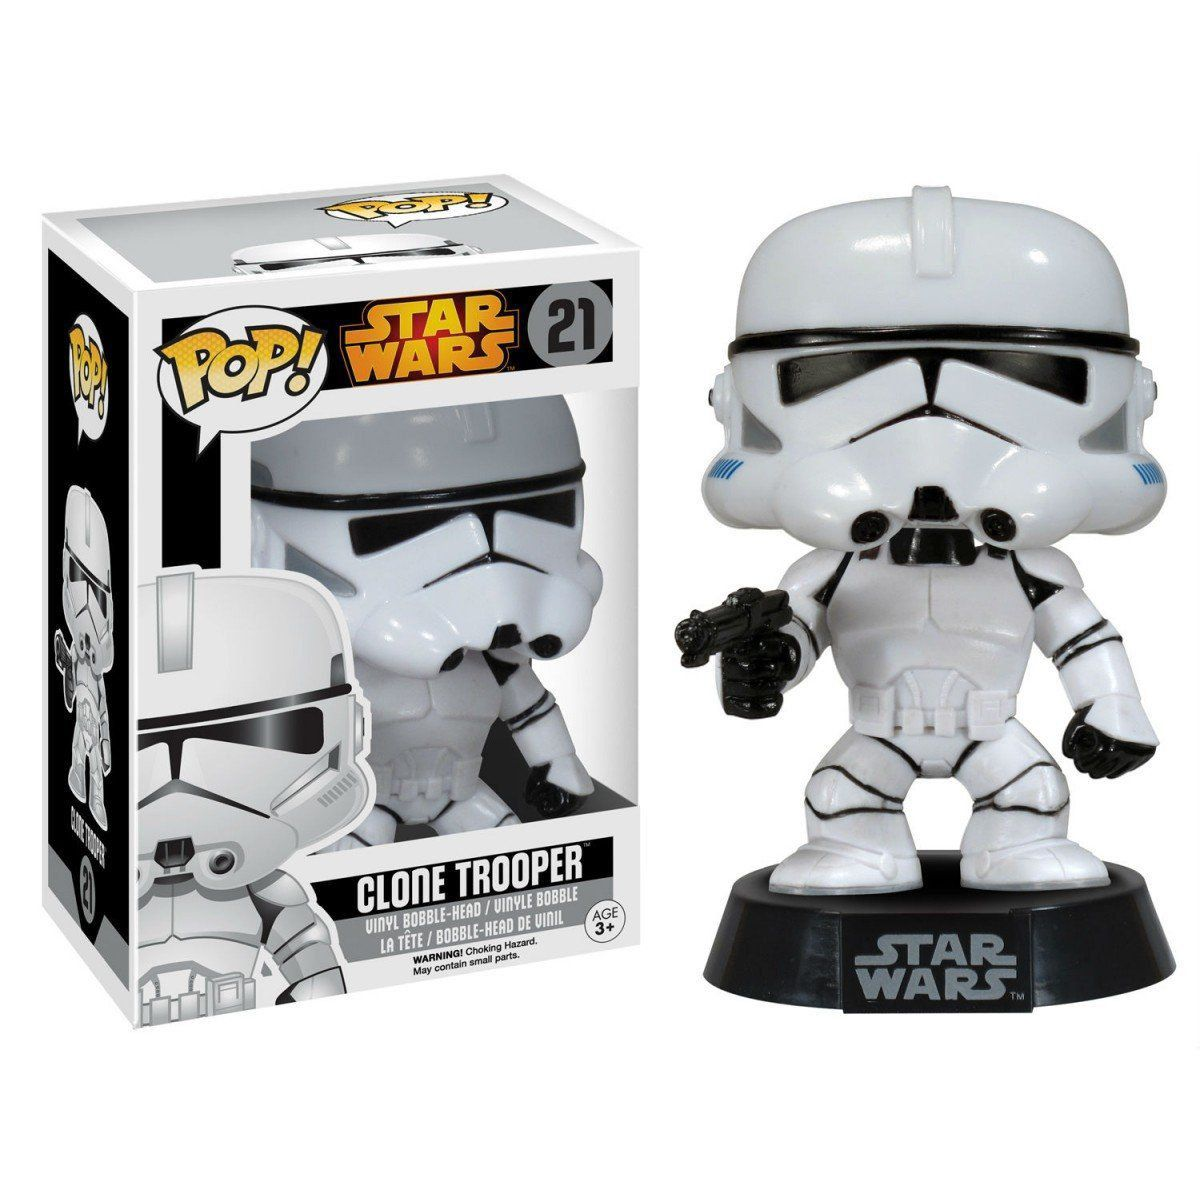 Funko Pop Clone Trooper: Star Wars #21 - Funko